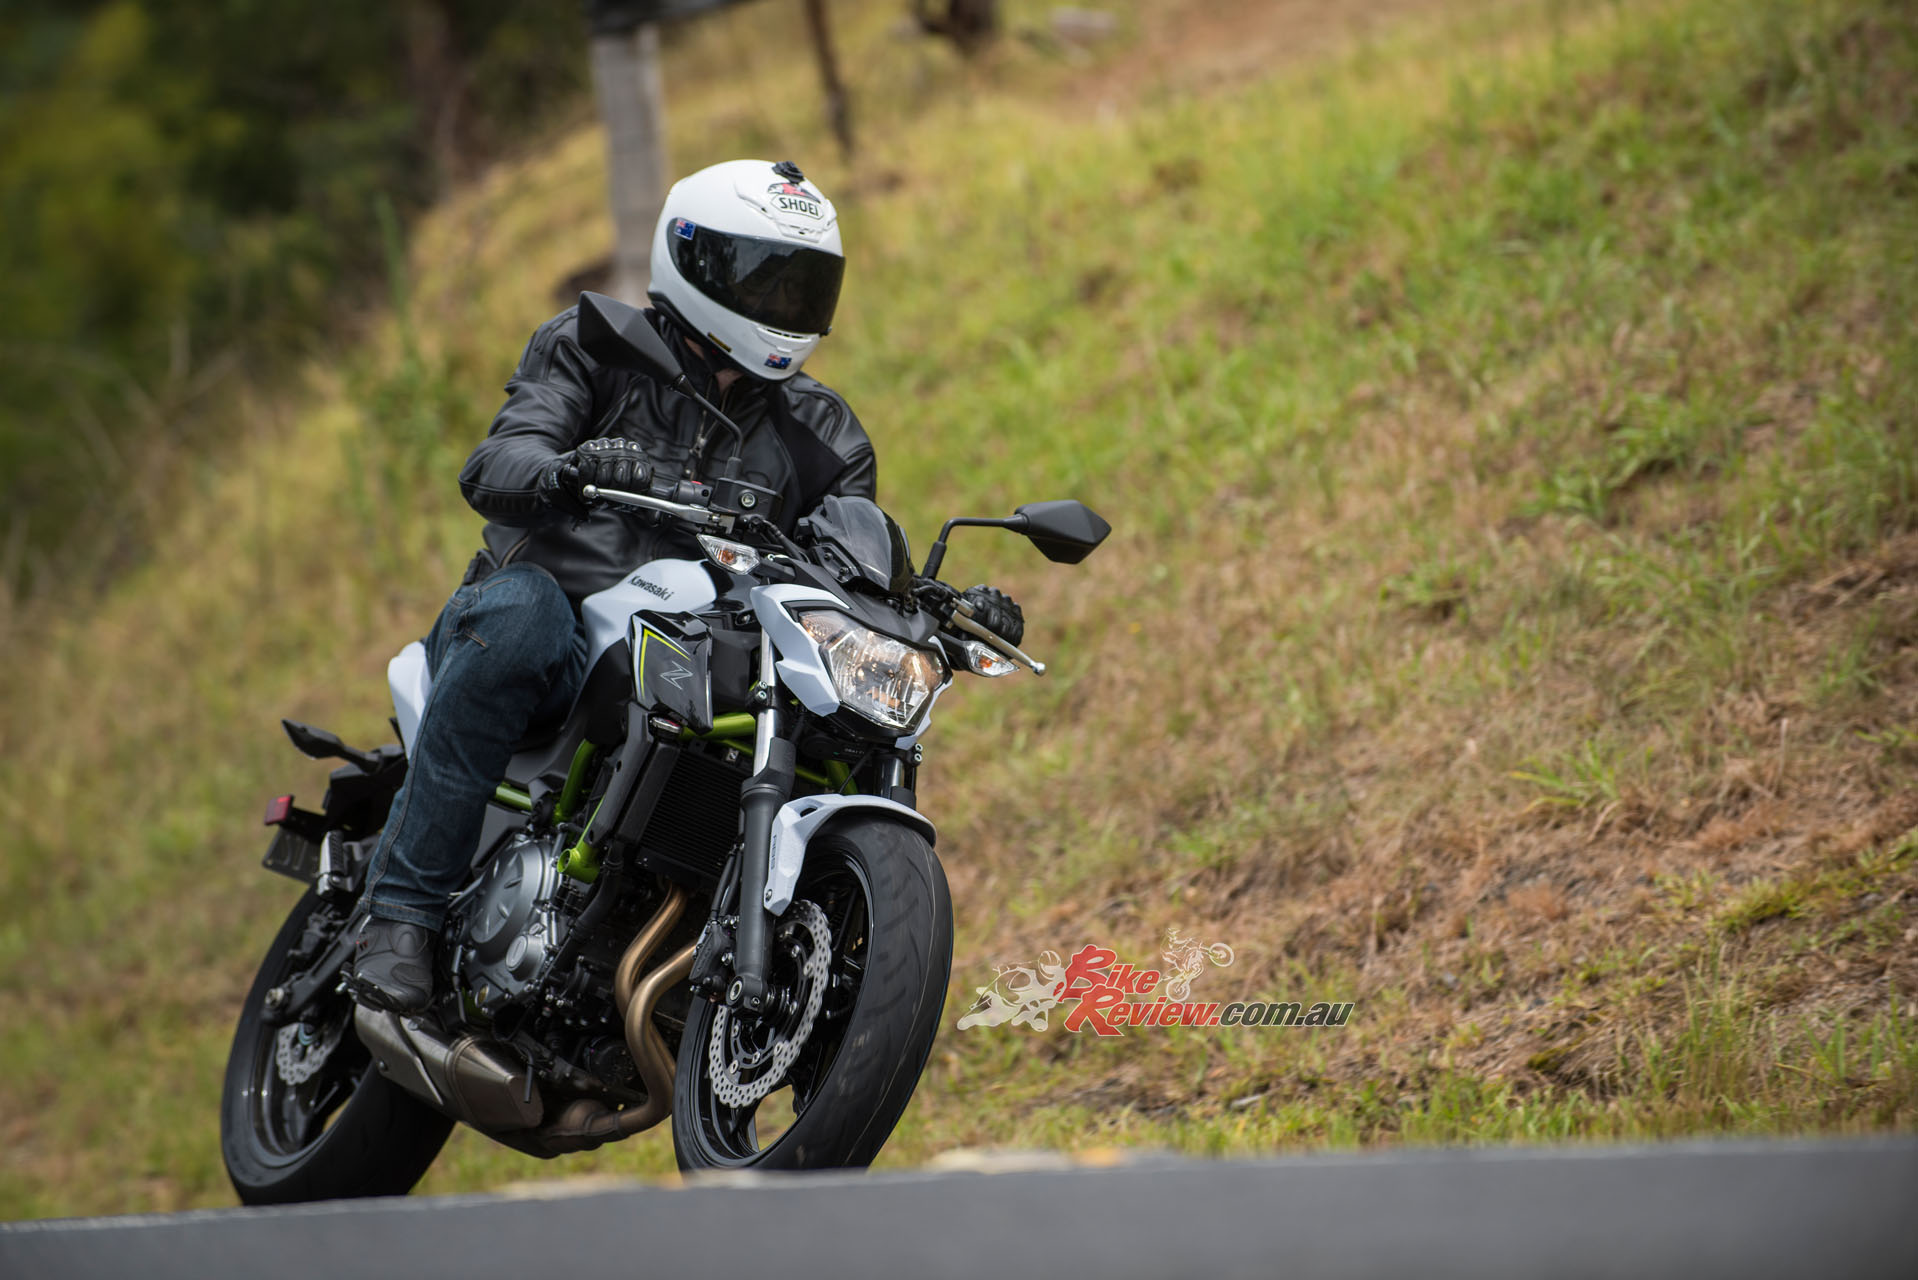 Whether cruising through the hills or fanging it the Z650L is a great all-rounder. The front-end is particularly good.